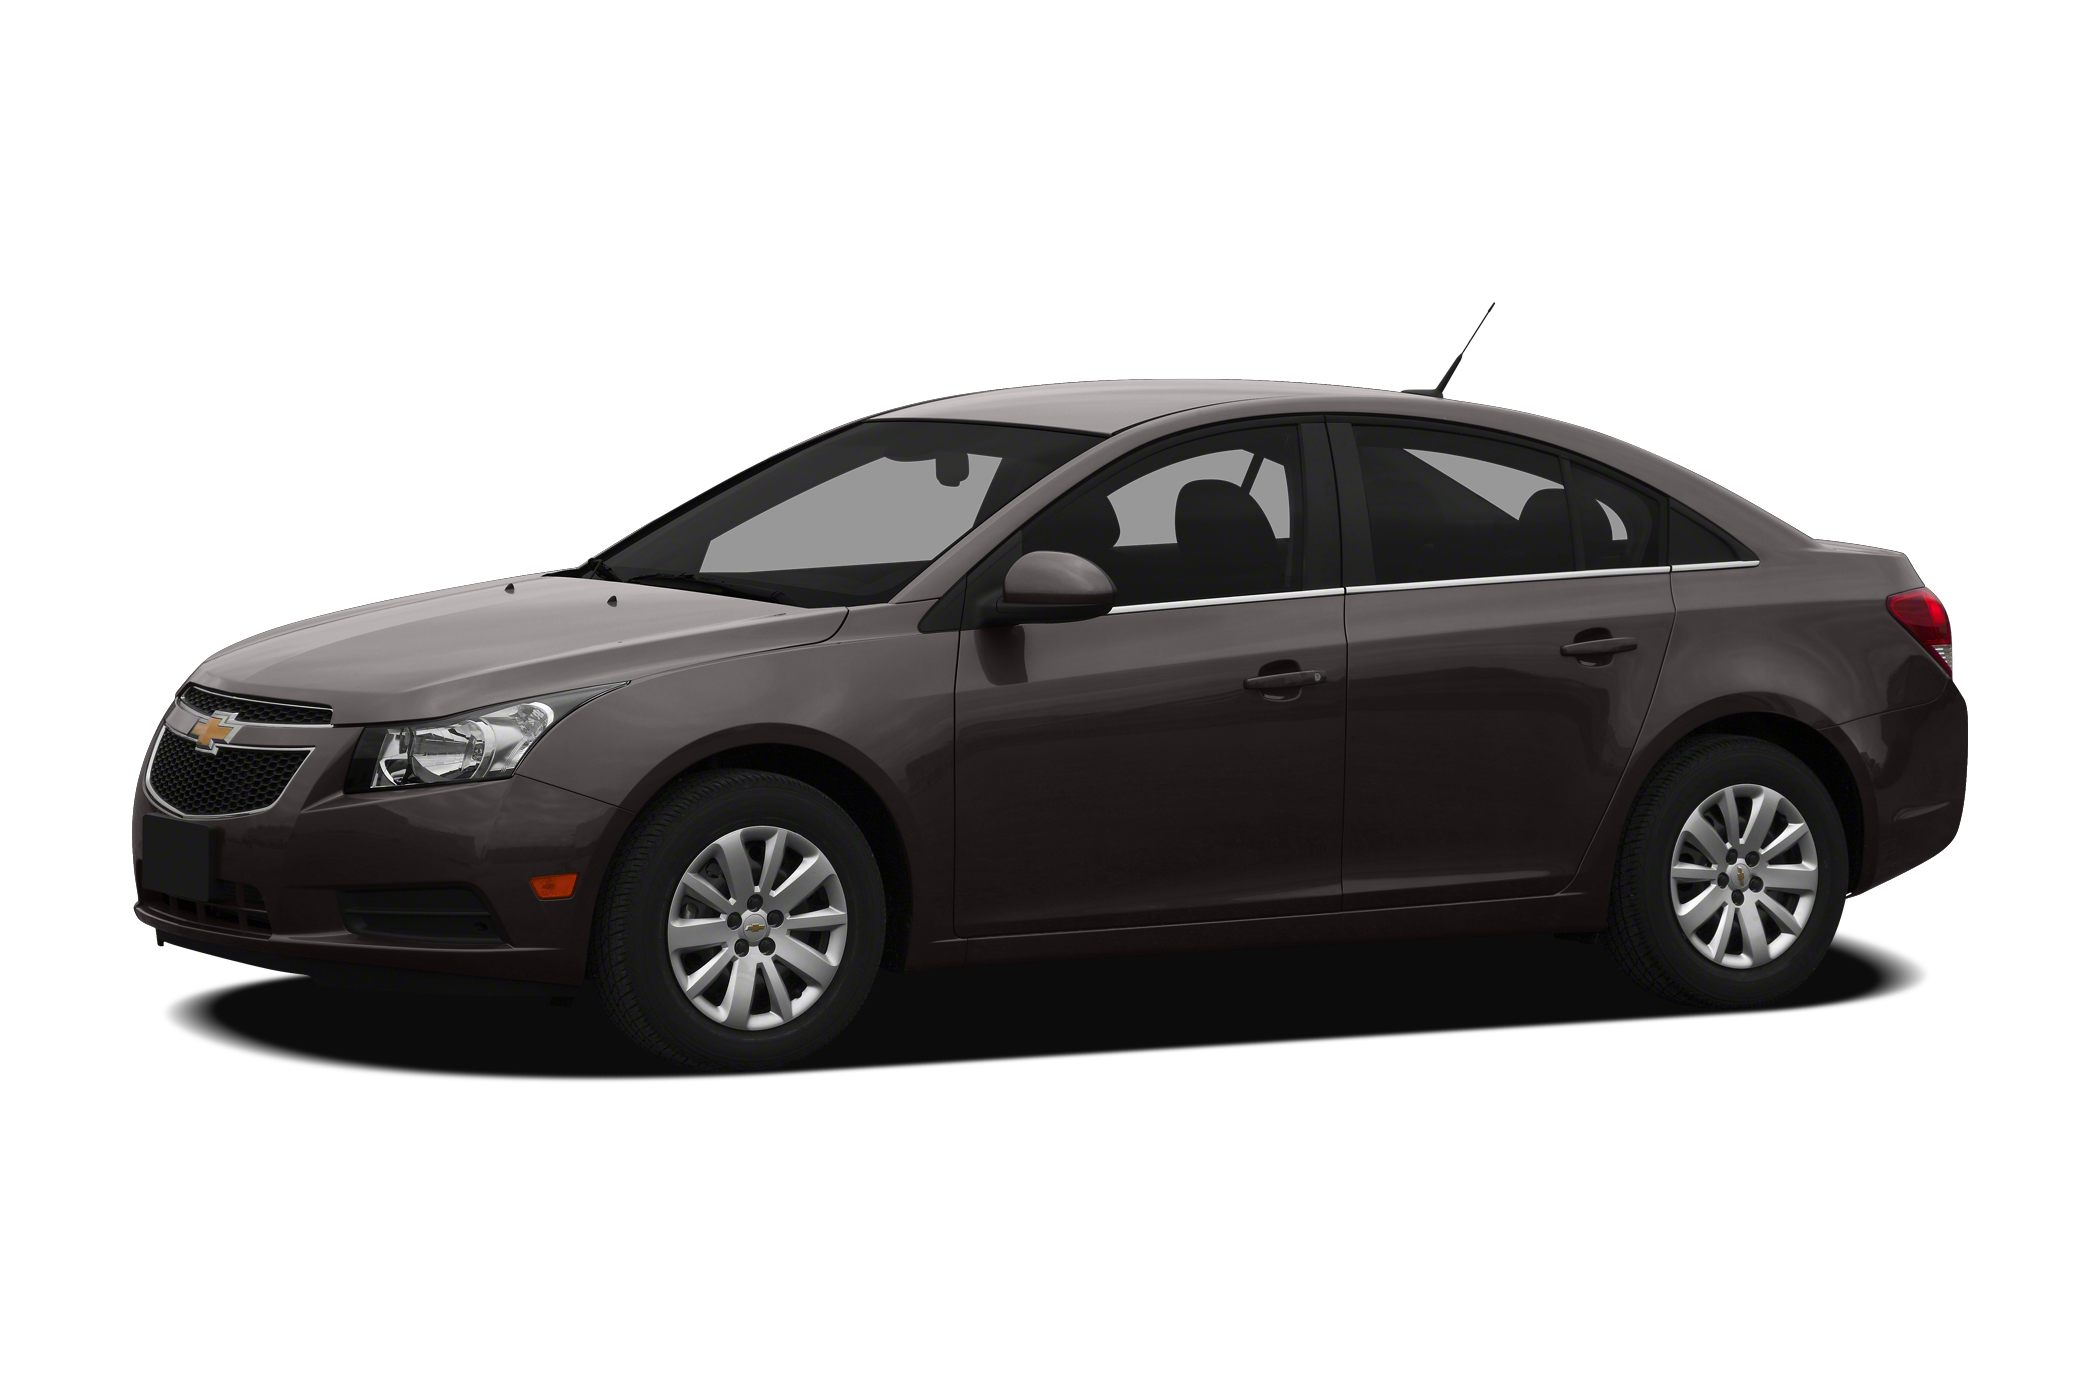 2011 Chevrolet Cruze LS Sedan for sale in Butte for $11,863 with 63,768 miles.